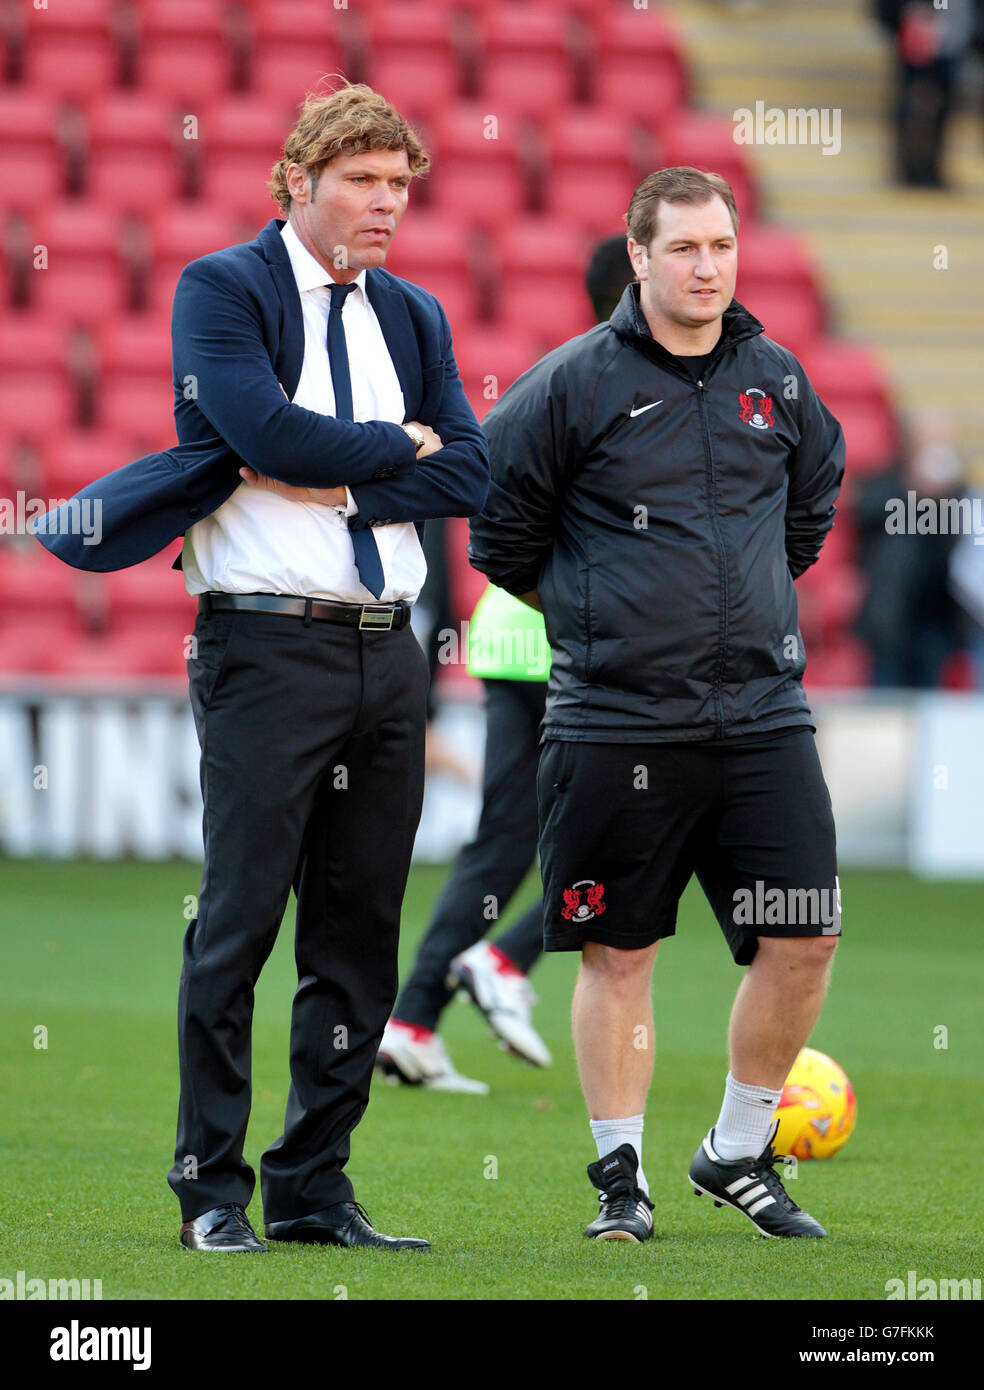 Leyton orient v coventry betting previews history of the 2000 guineas betting